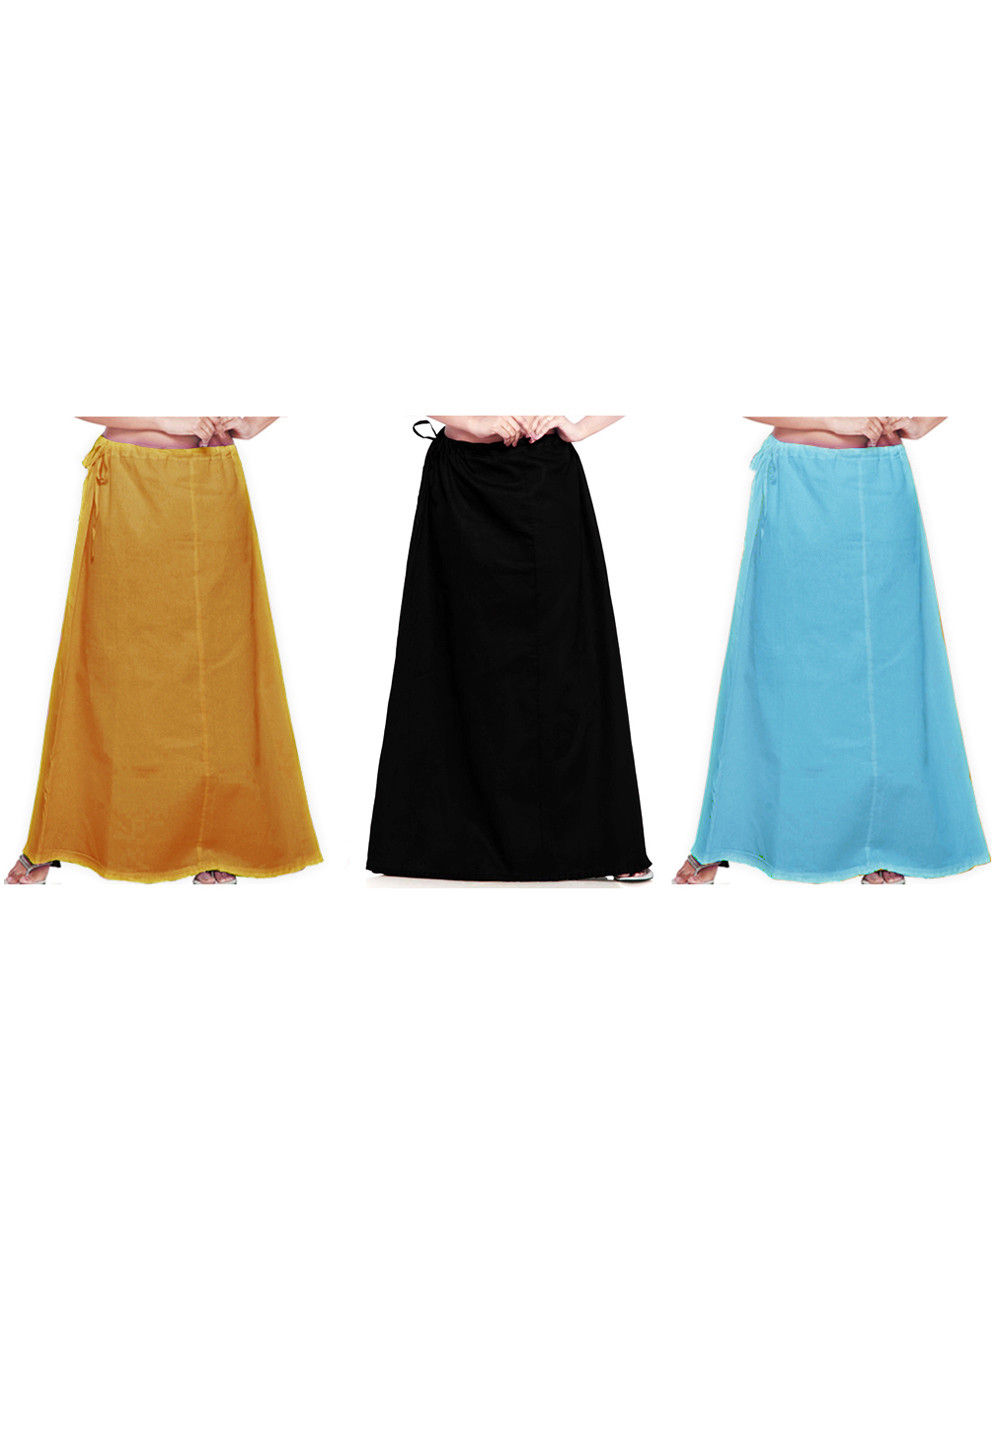 Combo Set Cotton Petticoat in Mustard, Black and Sky Blue